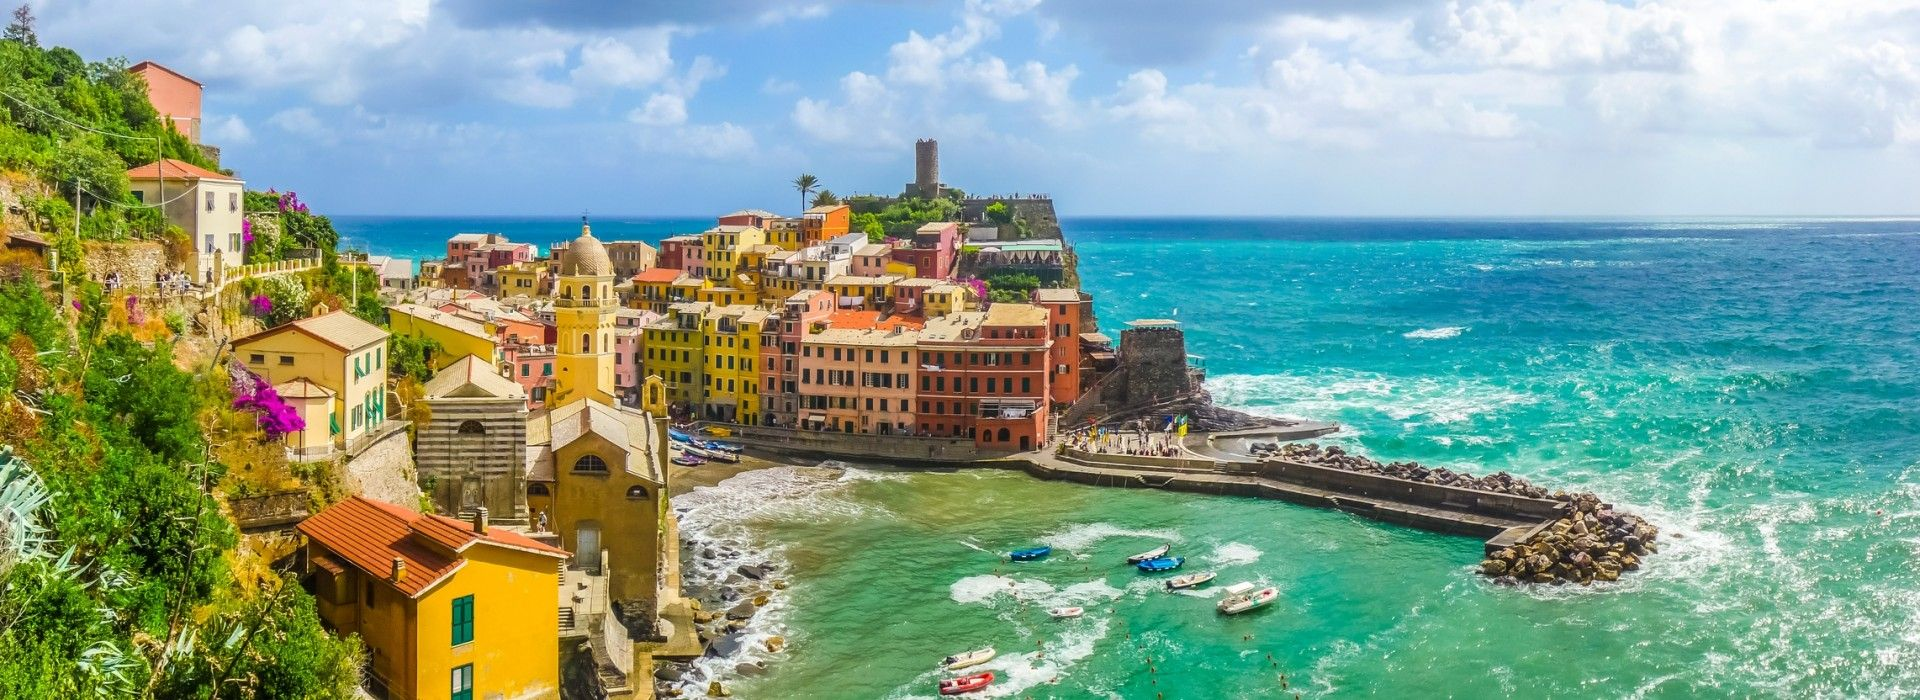 Walking tours in Cinque Terre and Liguria